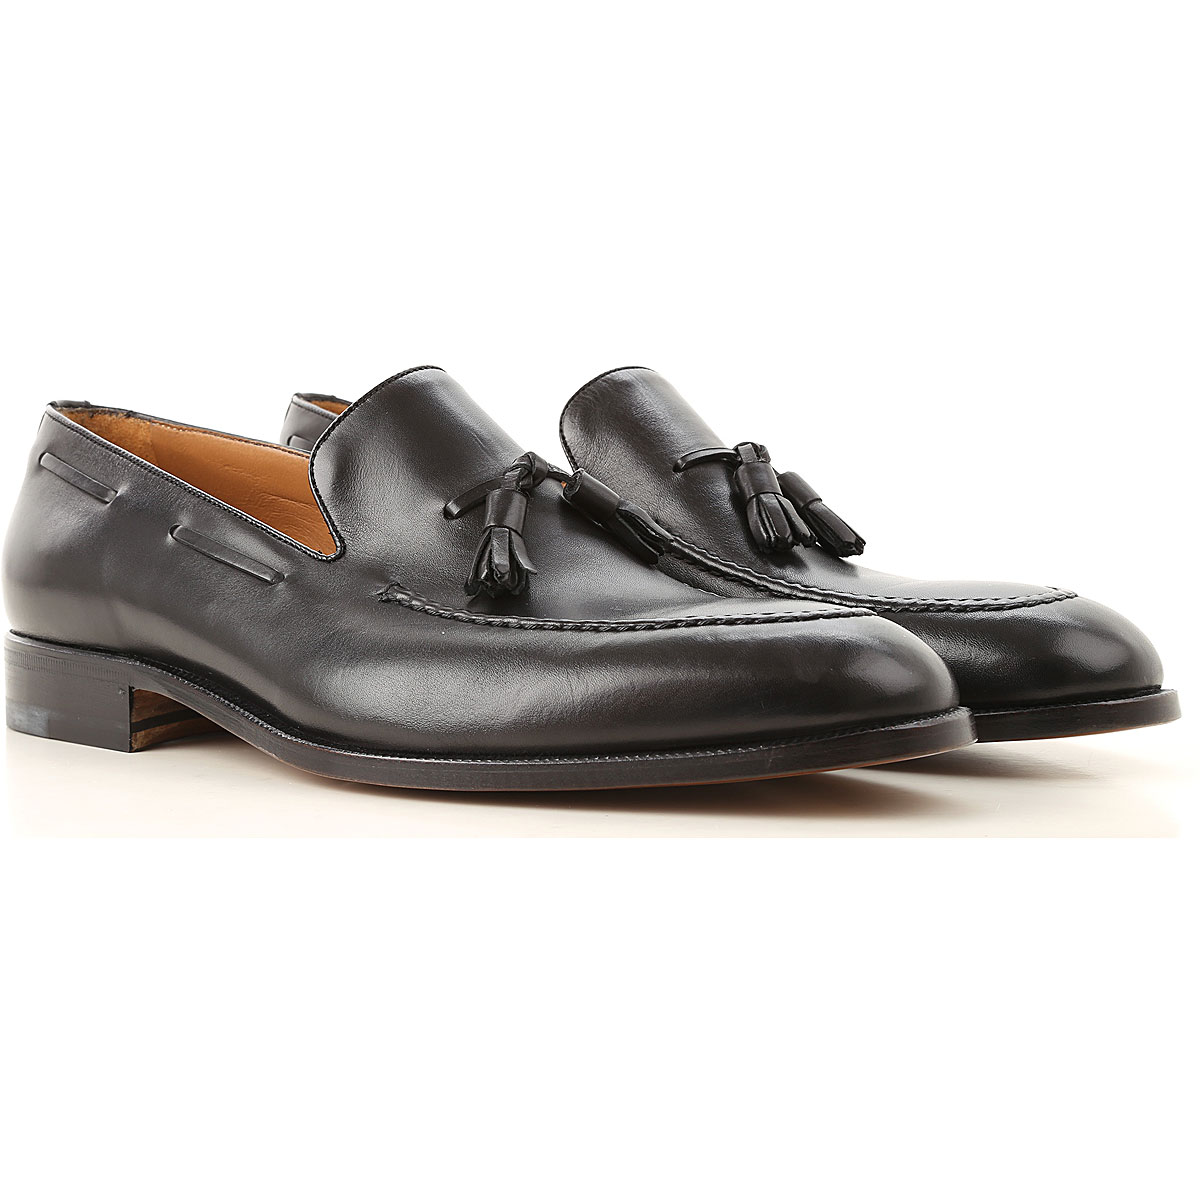 Image of Moreschi Loafers for Men, Black, Leather, 2017, 10 10.5 11 11.5 12 6 7 7.5 8 8.5 9 9.5